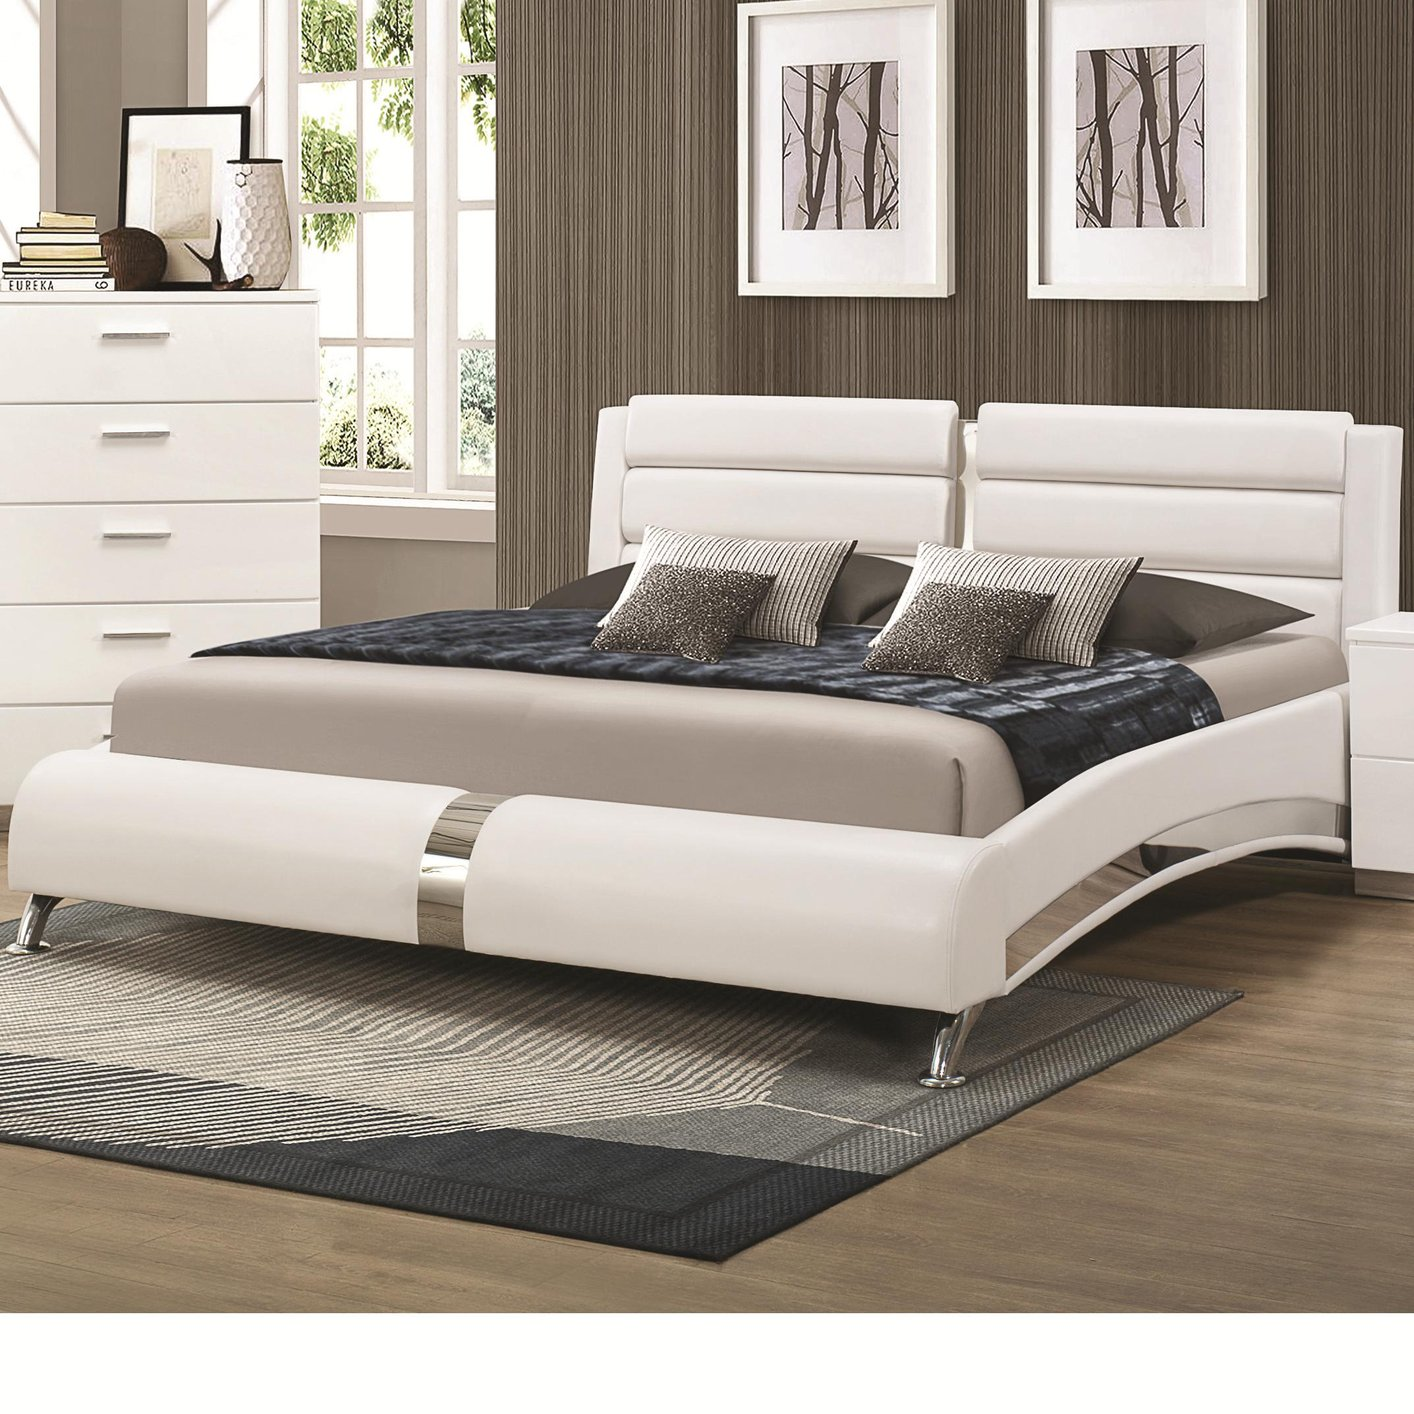 Bedroom Sets With Mattress Of Coaster 300345kw Silver California King Size Wood Bed